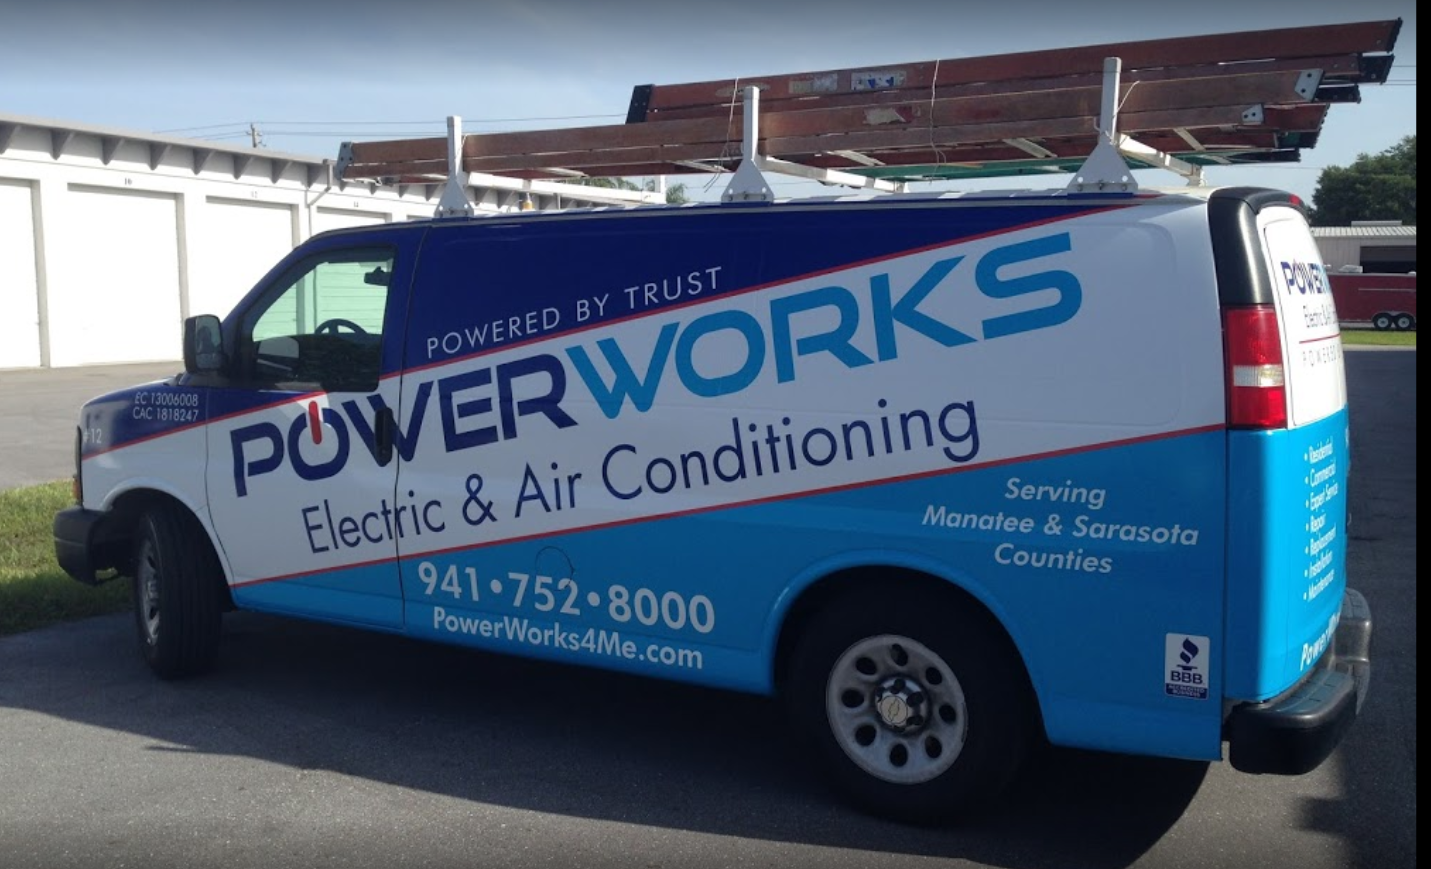 Powerworks Electric & Air Conditioning image 1